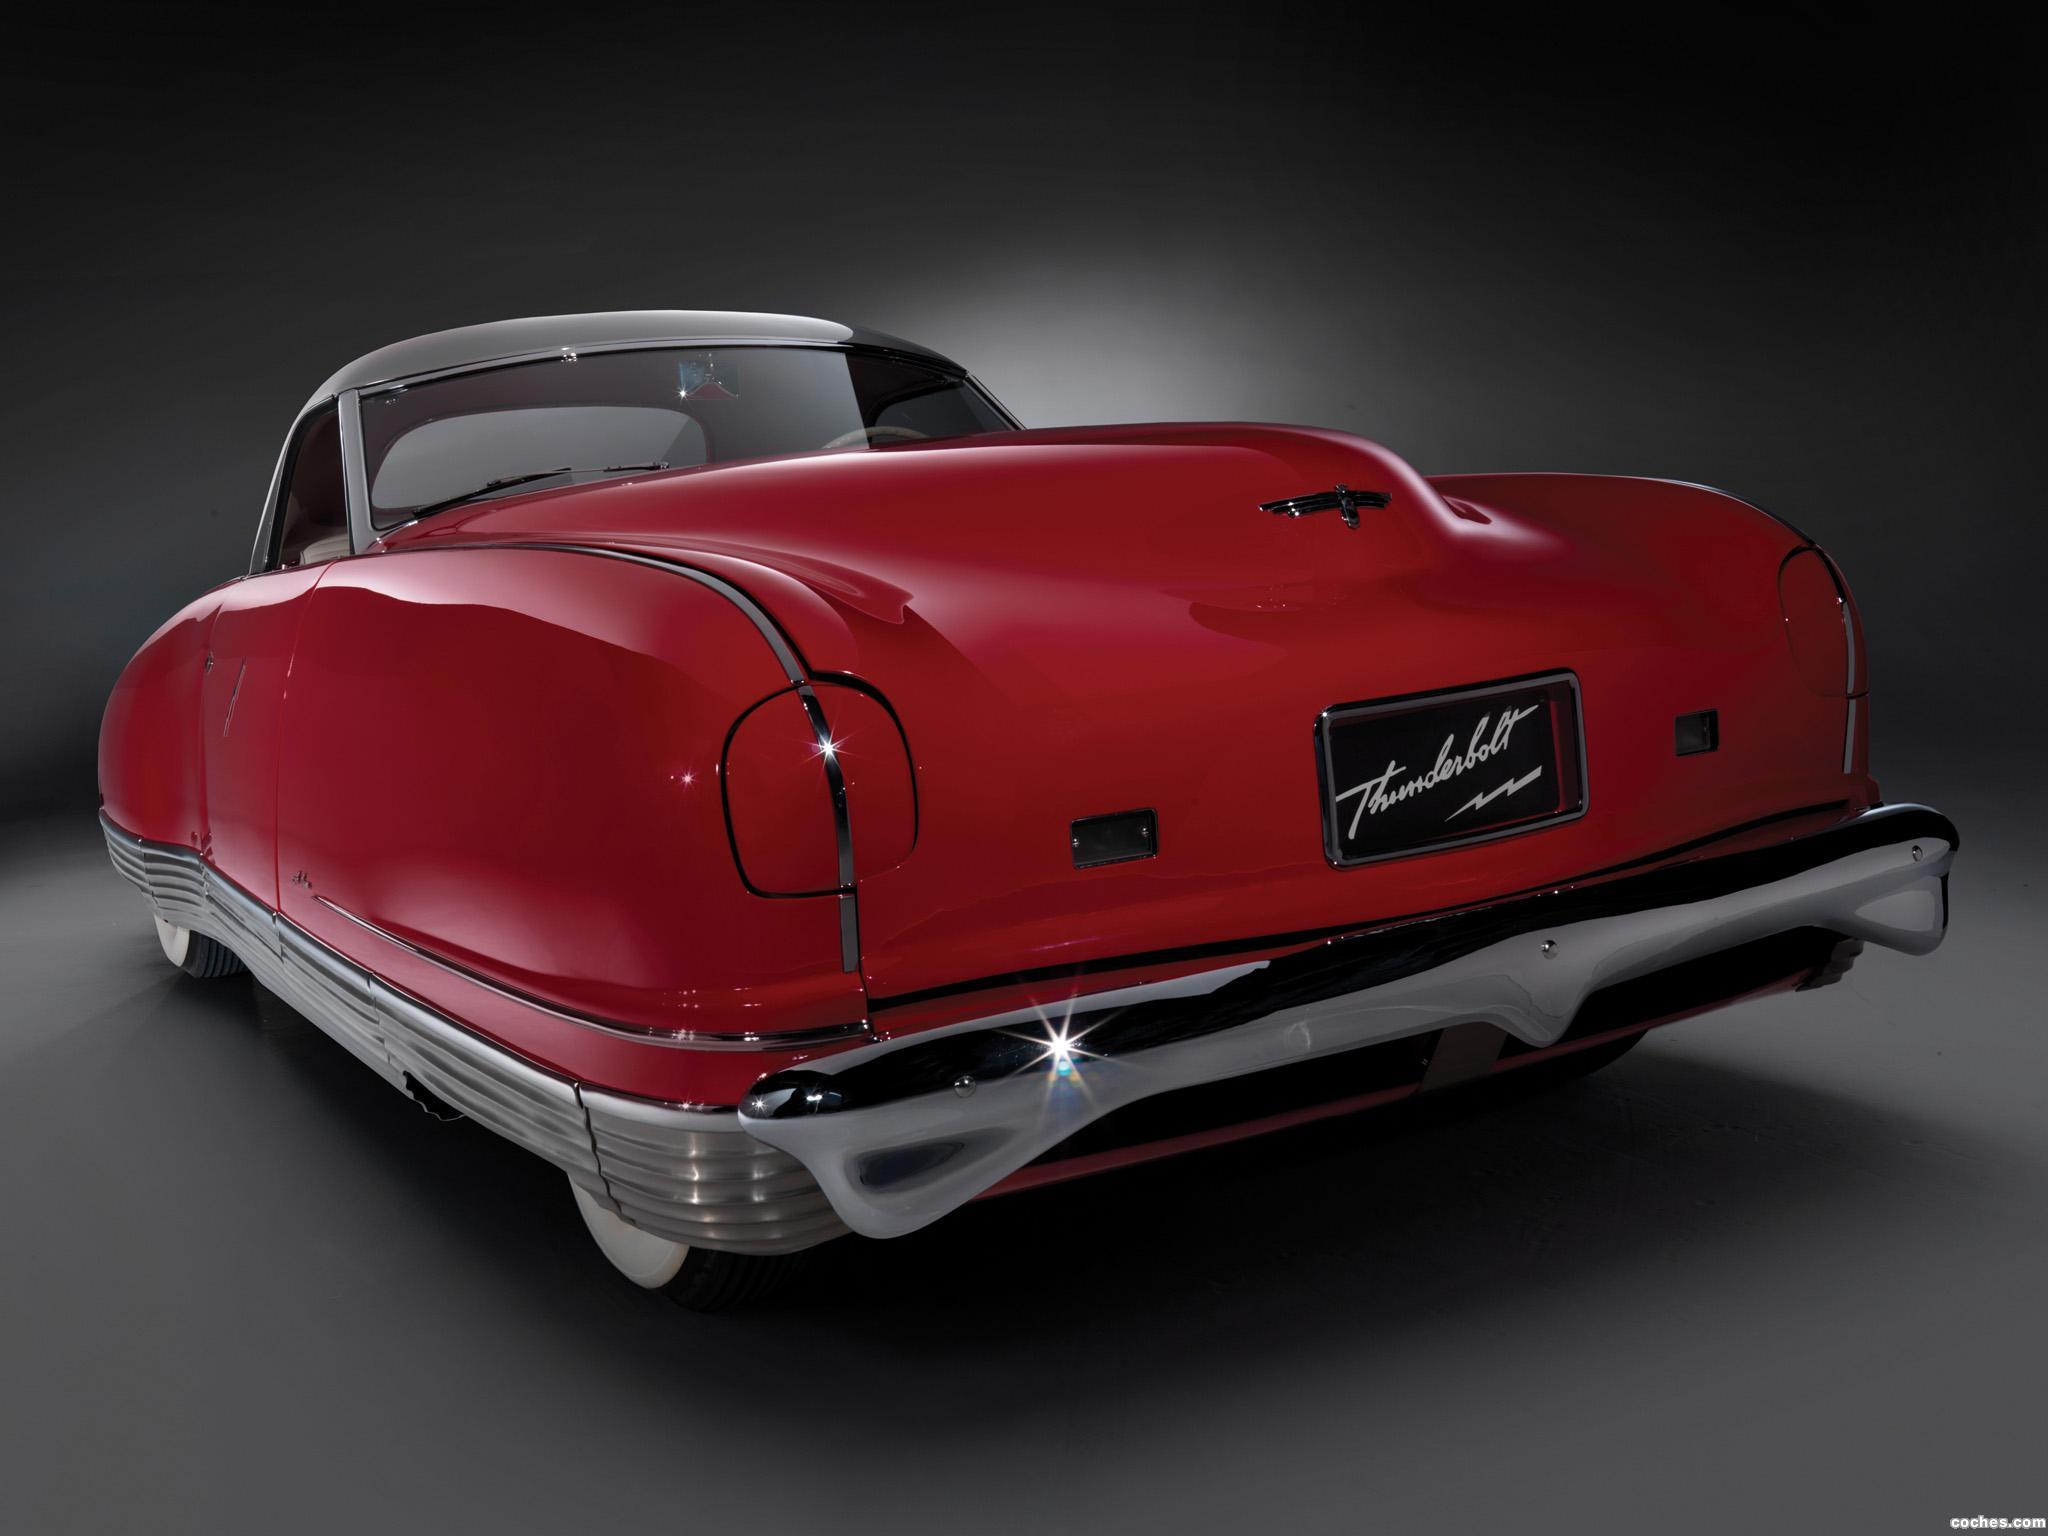 Foto 0 de Chrysler Thunderbolt Concept Car 1940